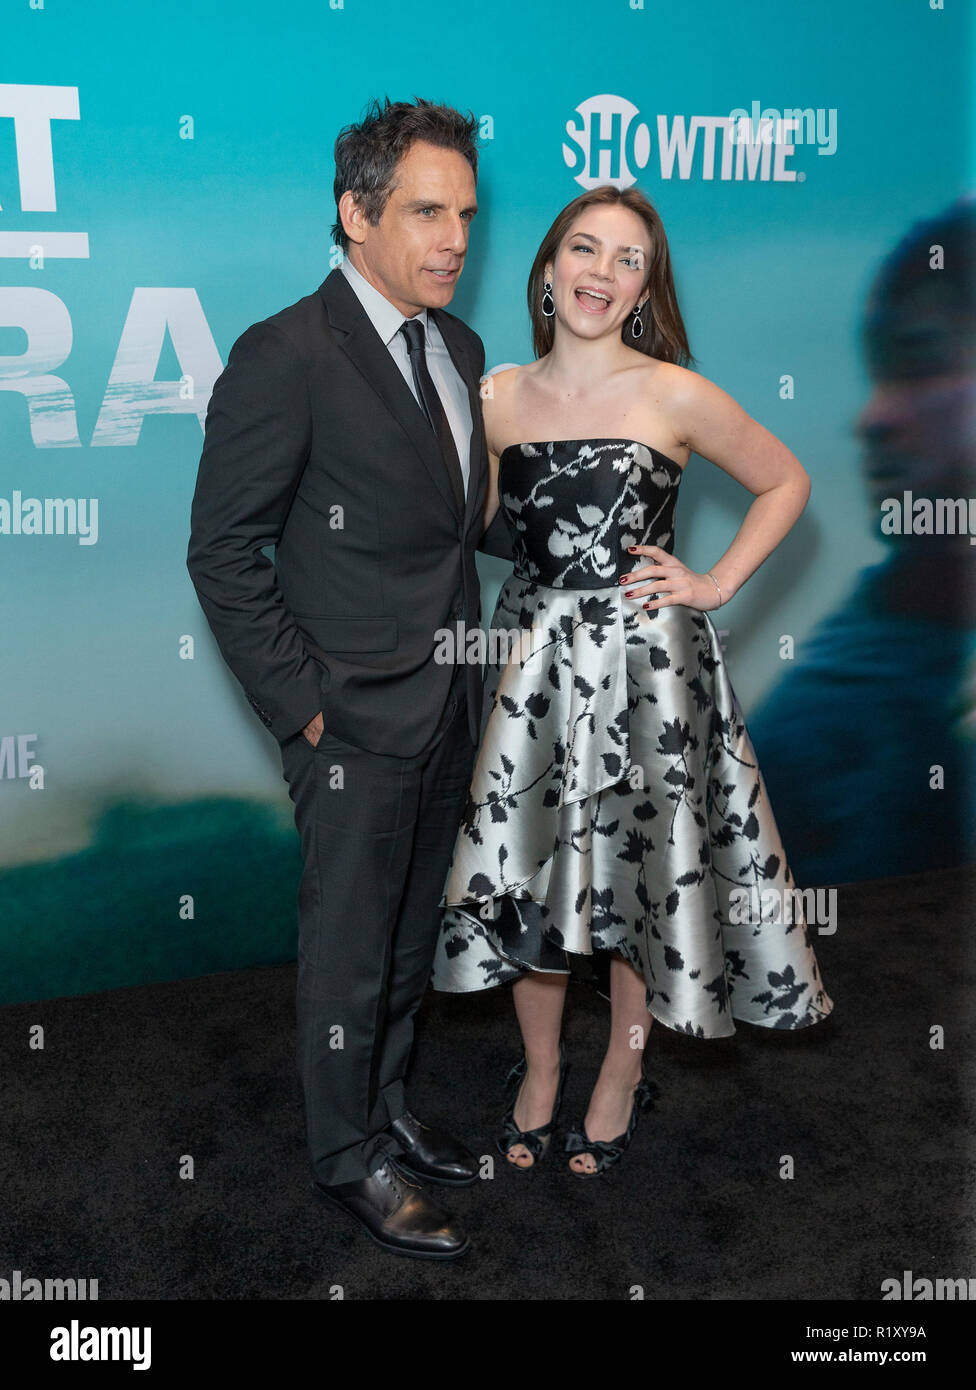 Nueva York, Estados Unidos. 14 Nov, 2018. Ben Stiller y Ella Olivia Stiller asistir al estreno de la serie de Showtime de escapar a Dannemora en Alice Tully Hall en el Lincoln Center. Crédito: Lev Radin/Pacific Press/Alamy Live News Foto de stock